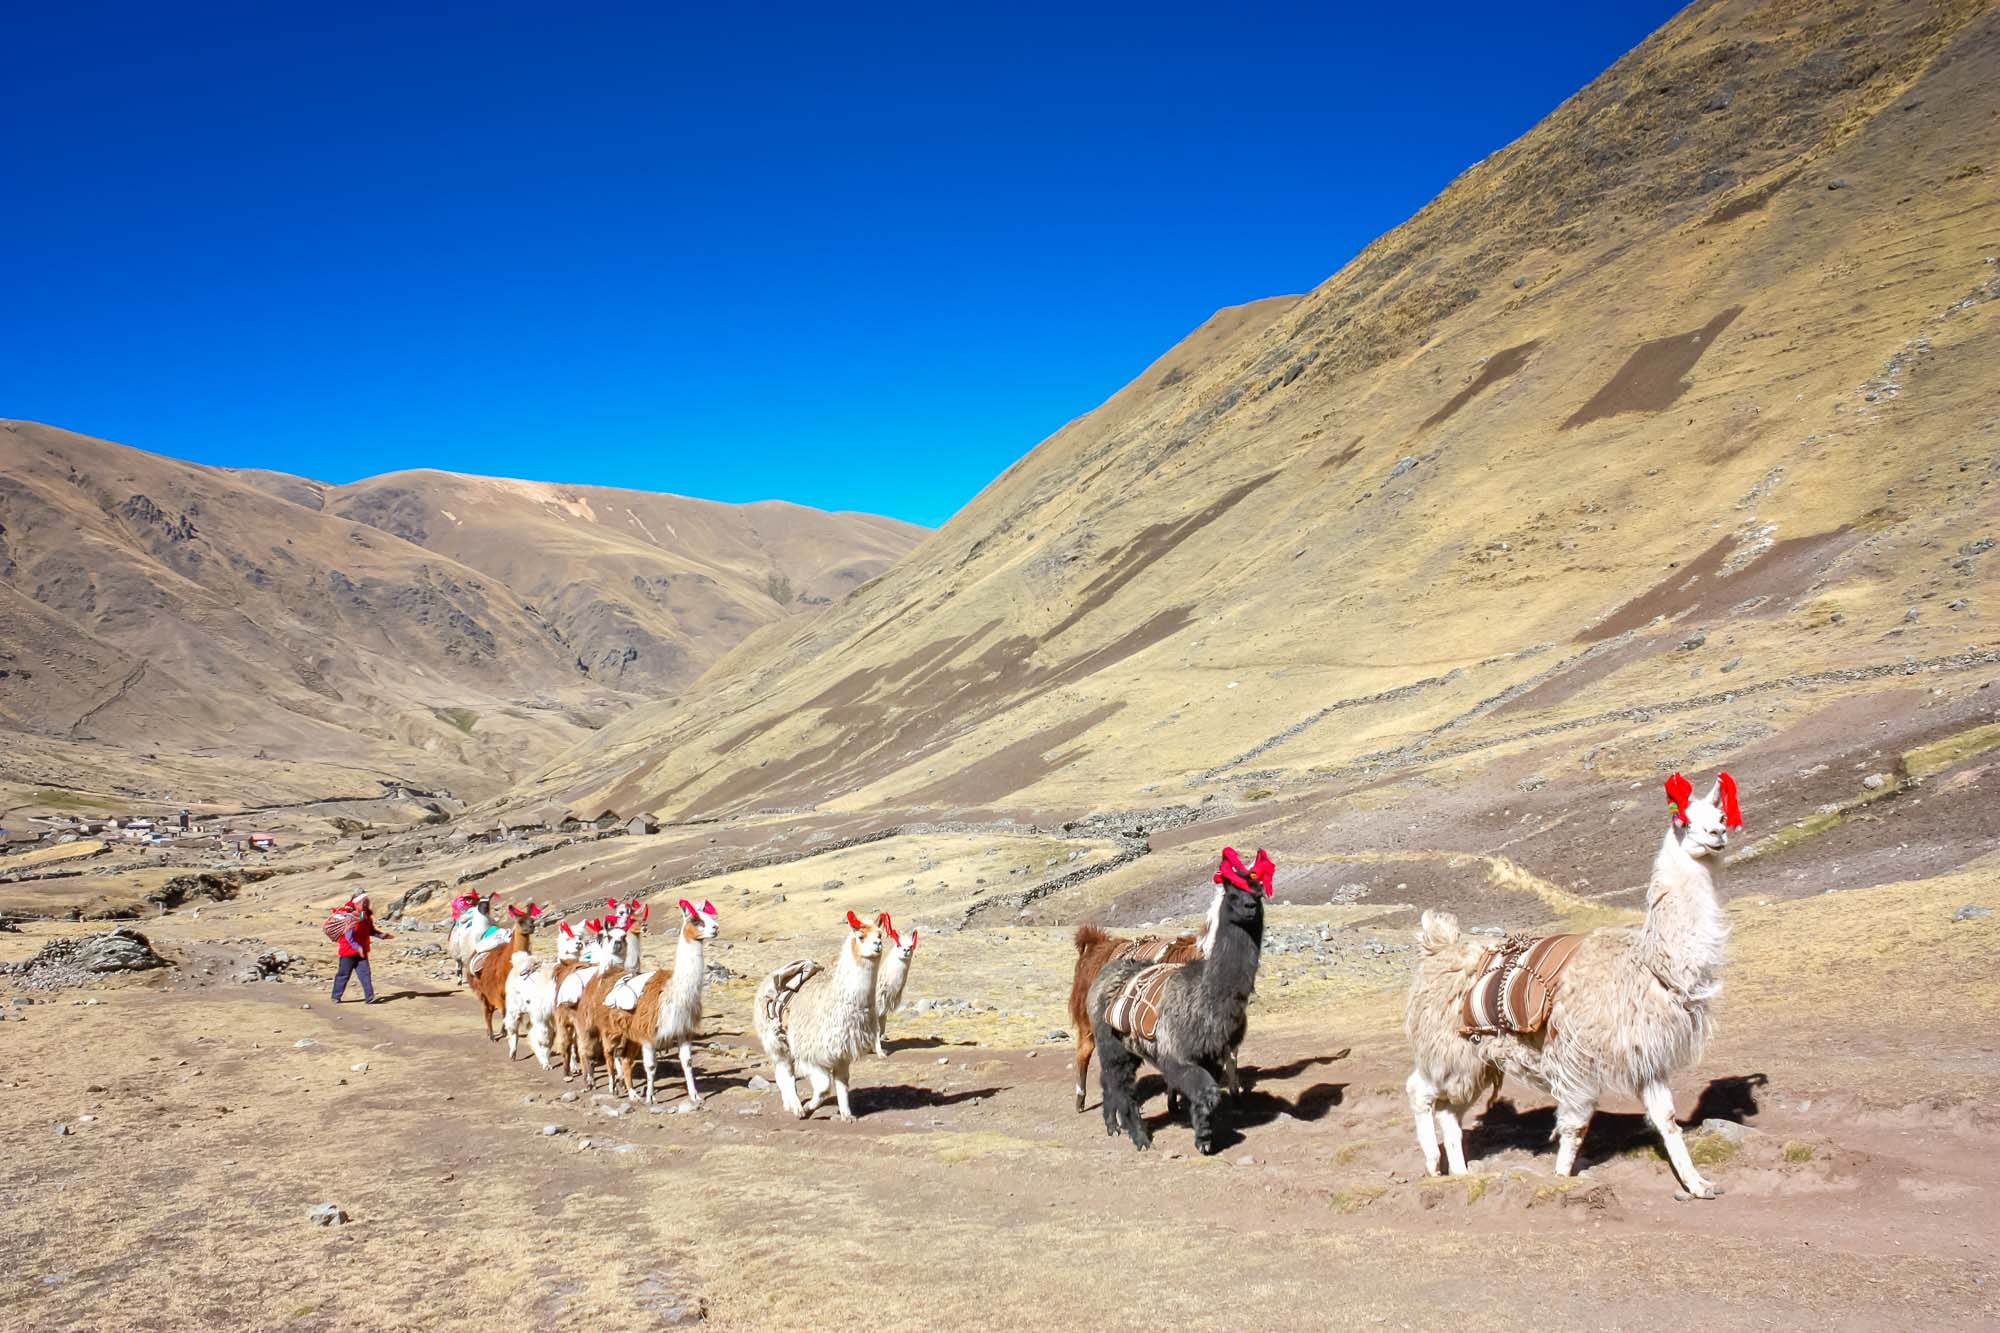 Man herds llamas through high Andean landscape